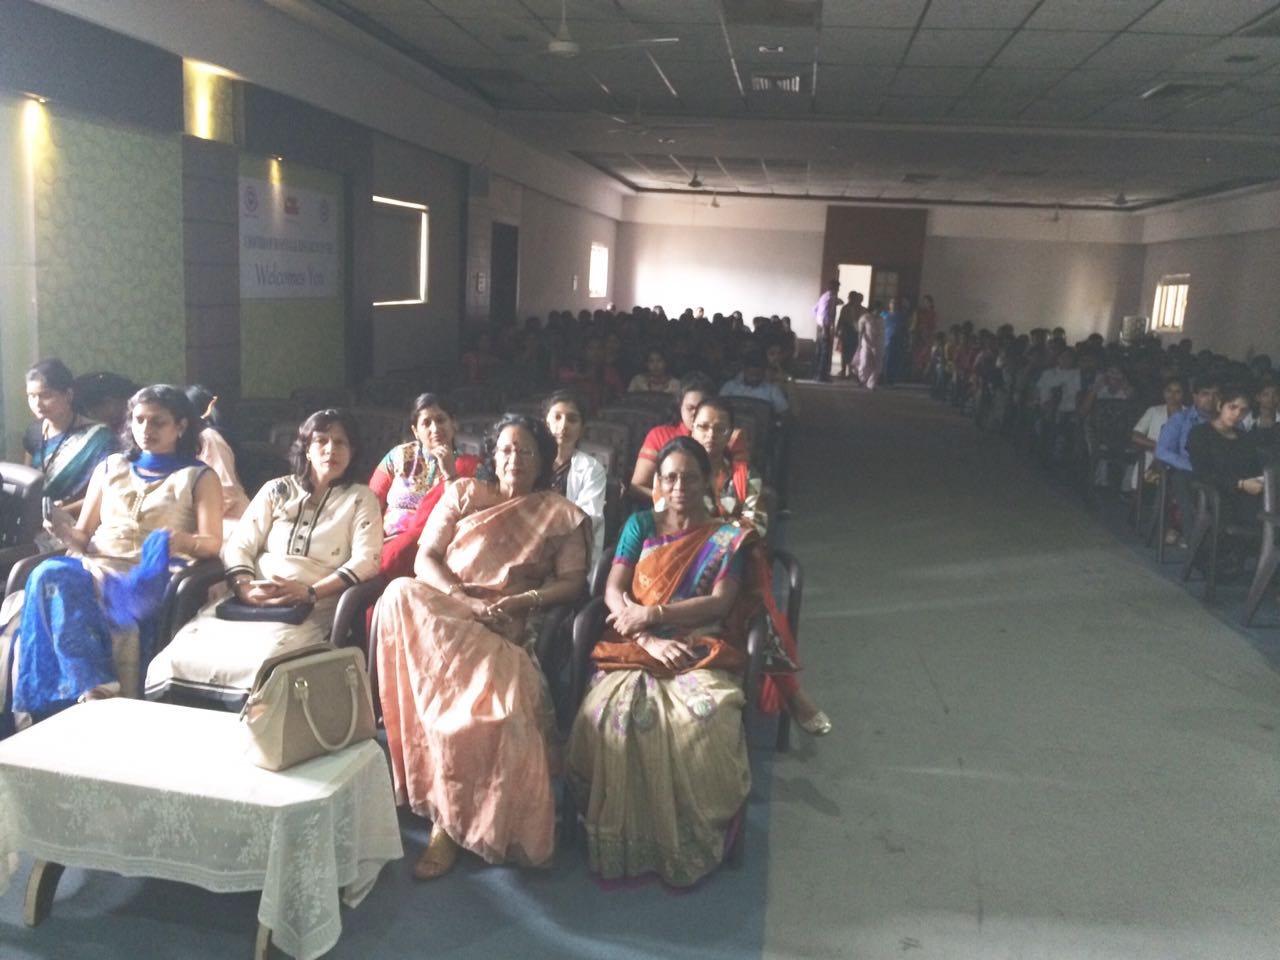 Program in Choitram college of nursing on 4 thanks to Sudha Chauhan Asha Jakad Farida Kaul for judging the skit competition & purnima 4 joining with Rajni Bhandari